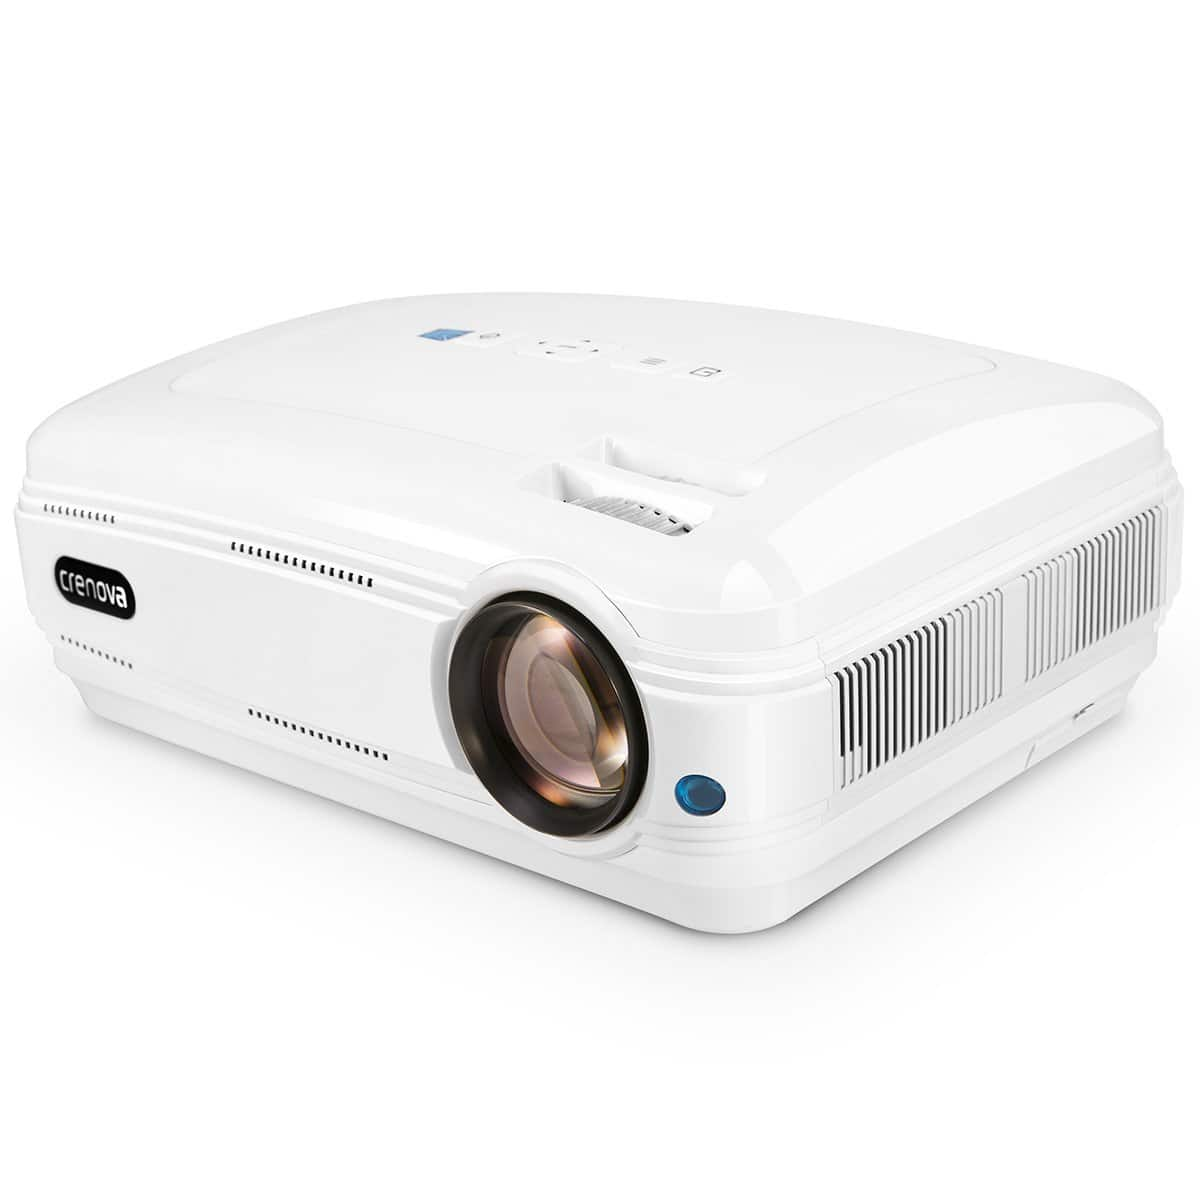 Lighting deal : Crenova XPE680 720P HD Projector, Home Theater Multimedia Video Office Projector for $76.71 @ Amazon